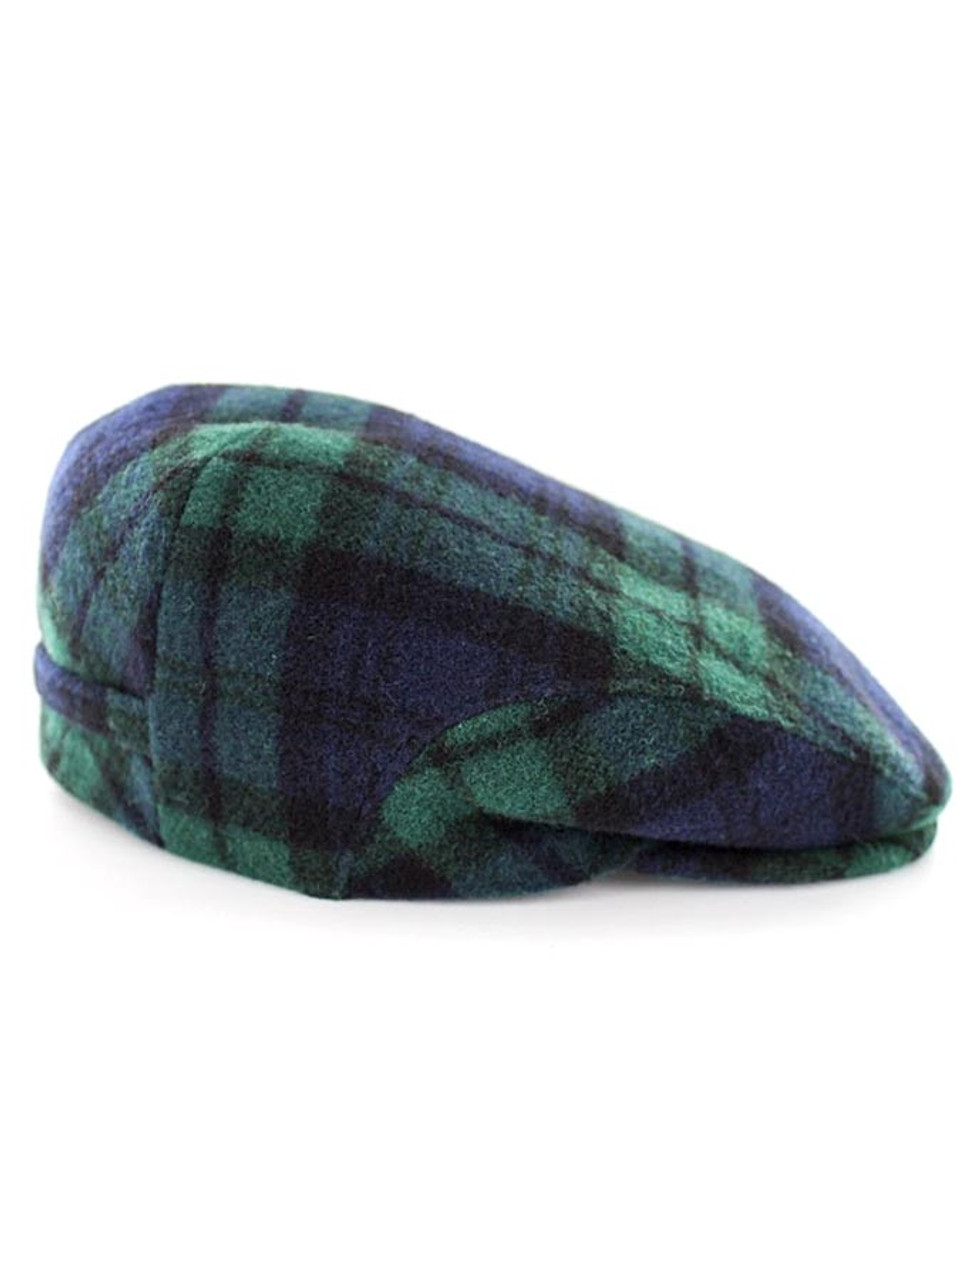 cec71e5139cdd Trinity Tweed Flat Cap - Navy Green Plaid